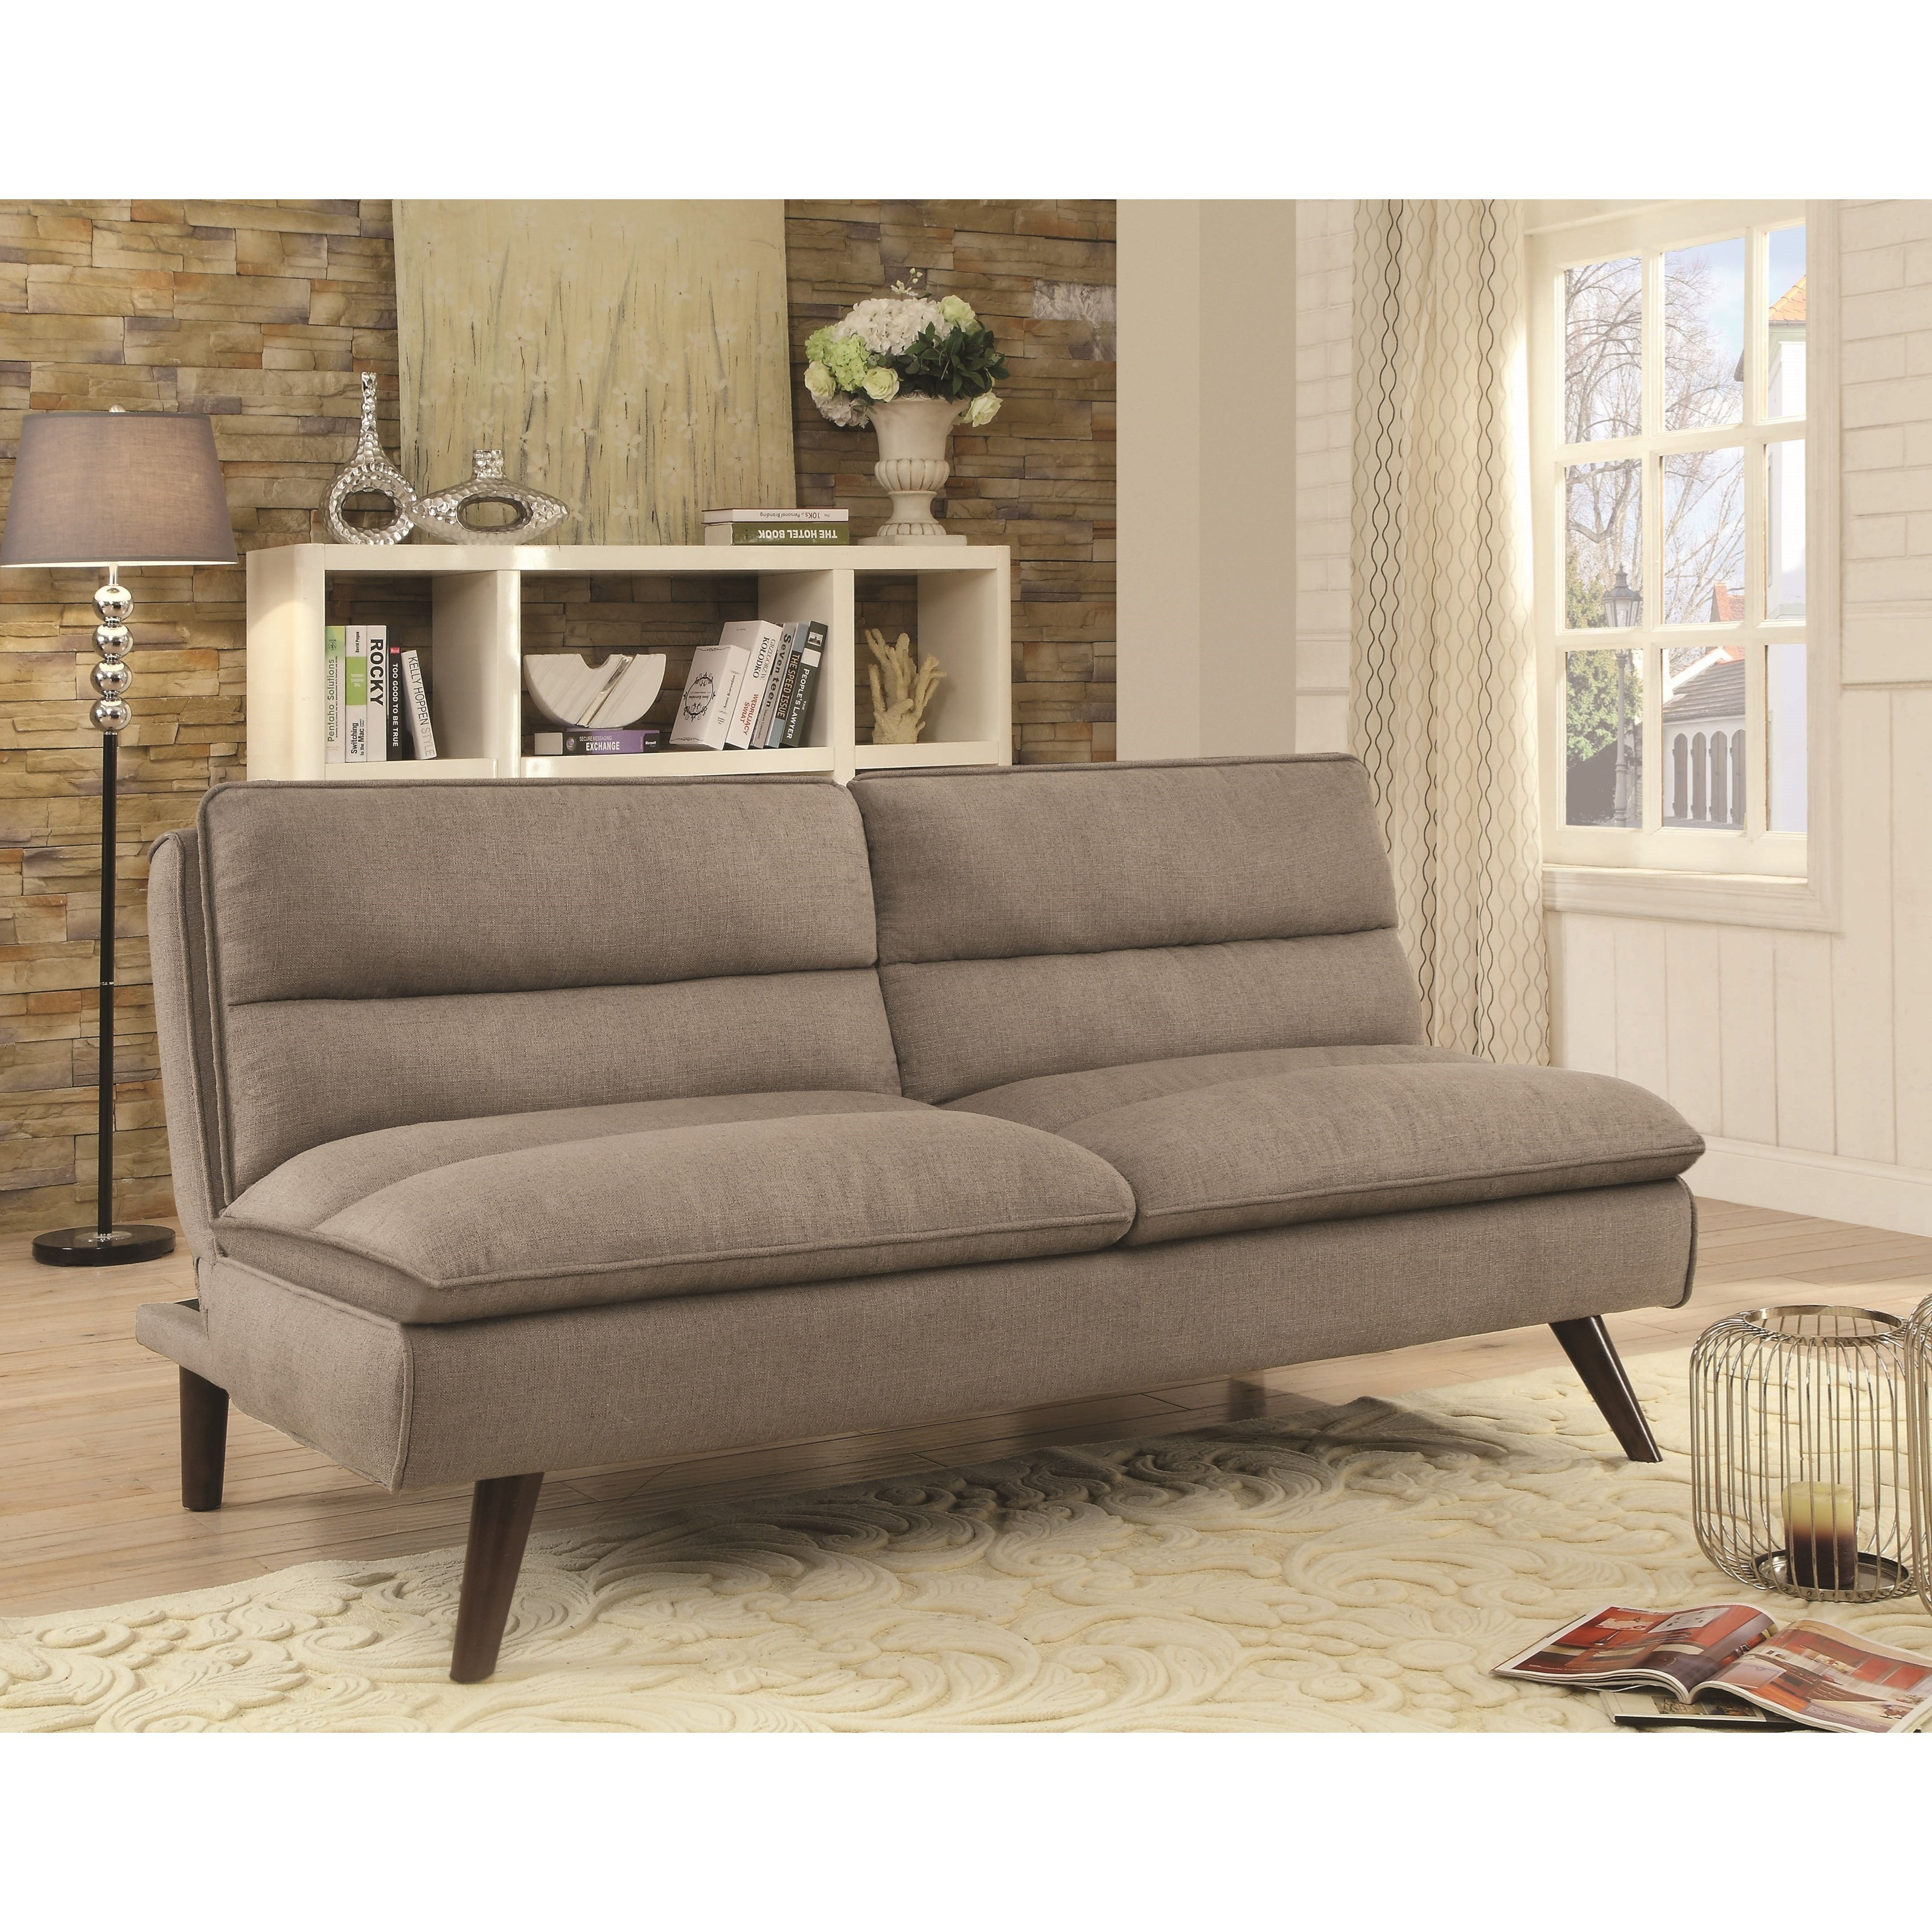 coaster futons 500320 sofa bed with twill fabric dunk. Black Bedroom Furniture Sets. Home Design Ideas